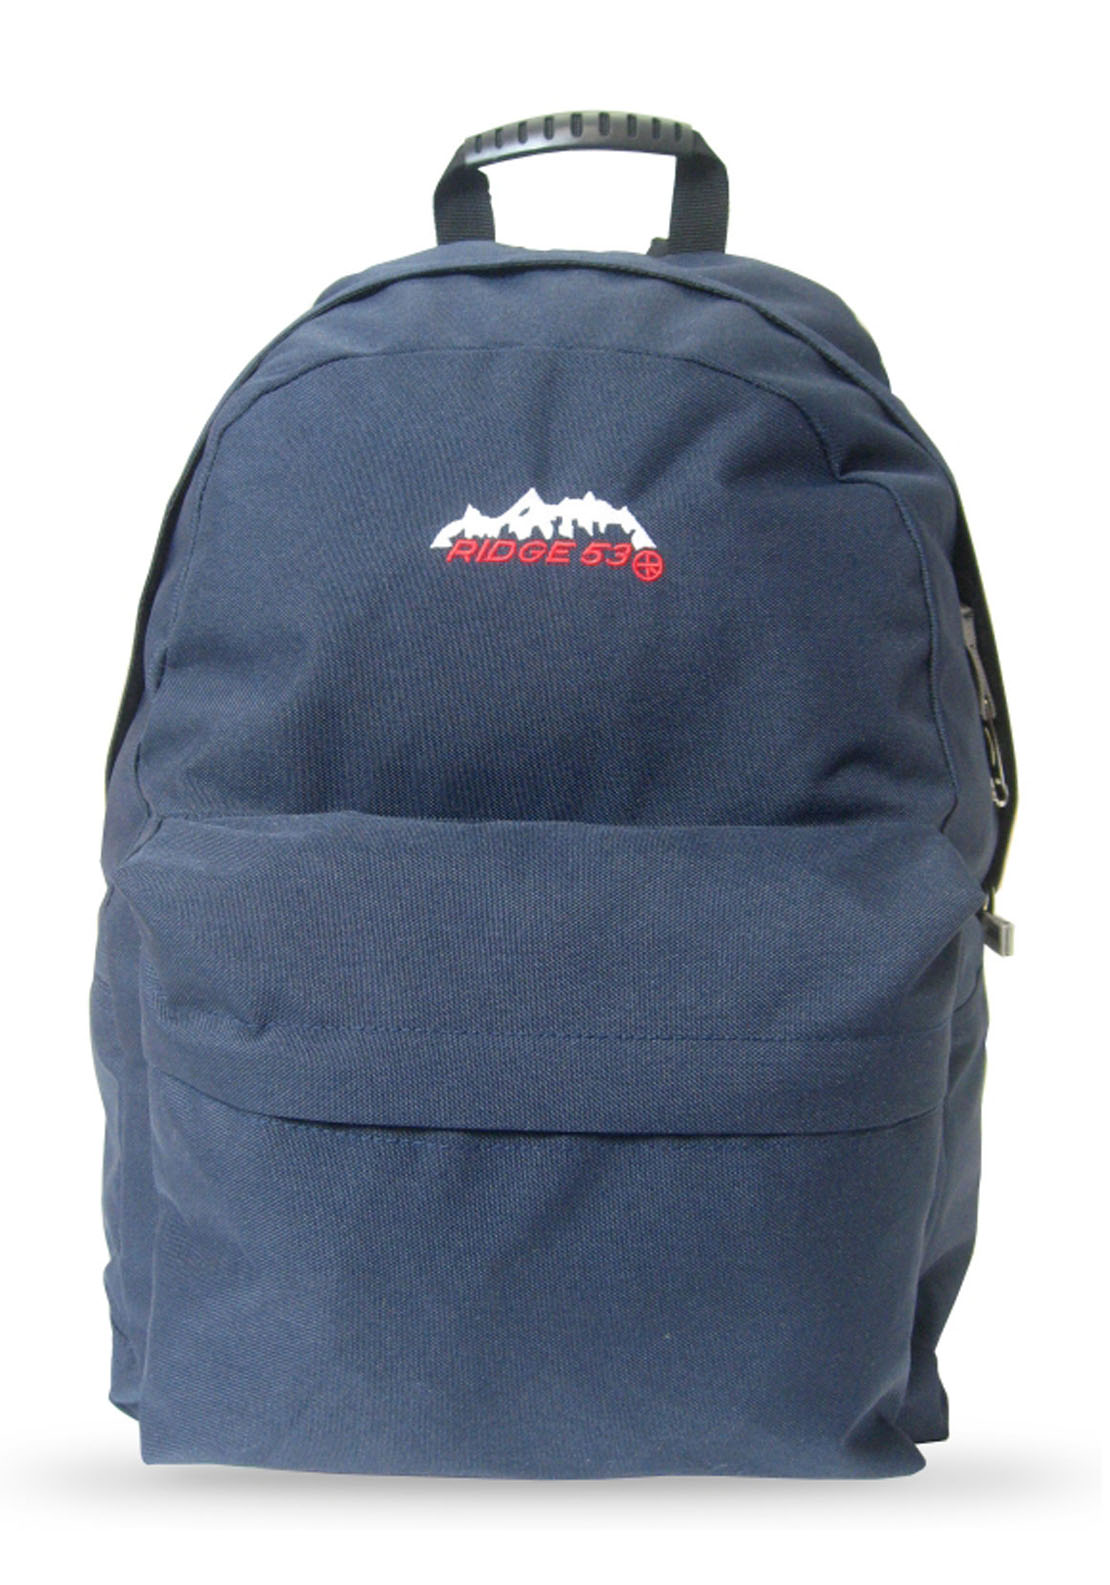 Ridge 53 Morgan Backpack School Bag, Navy